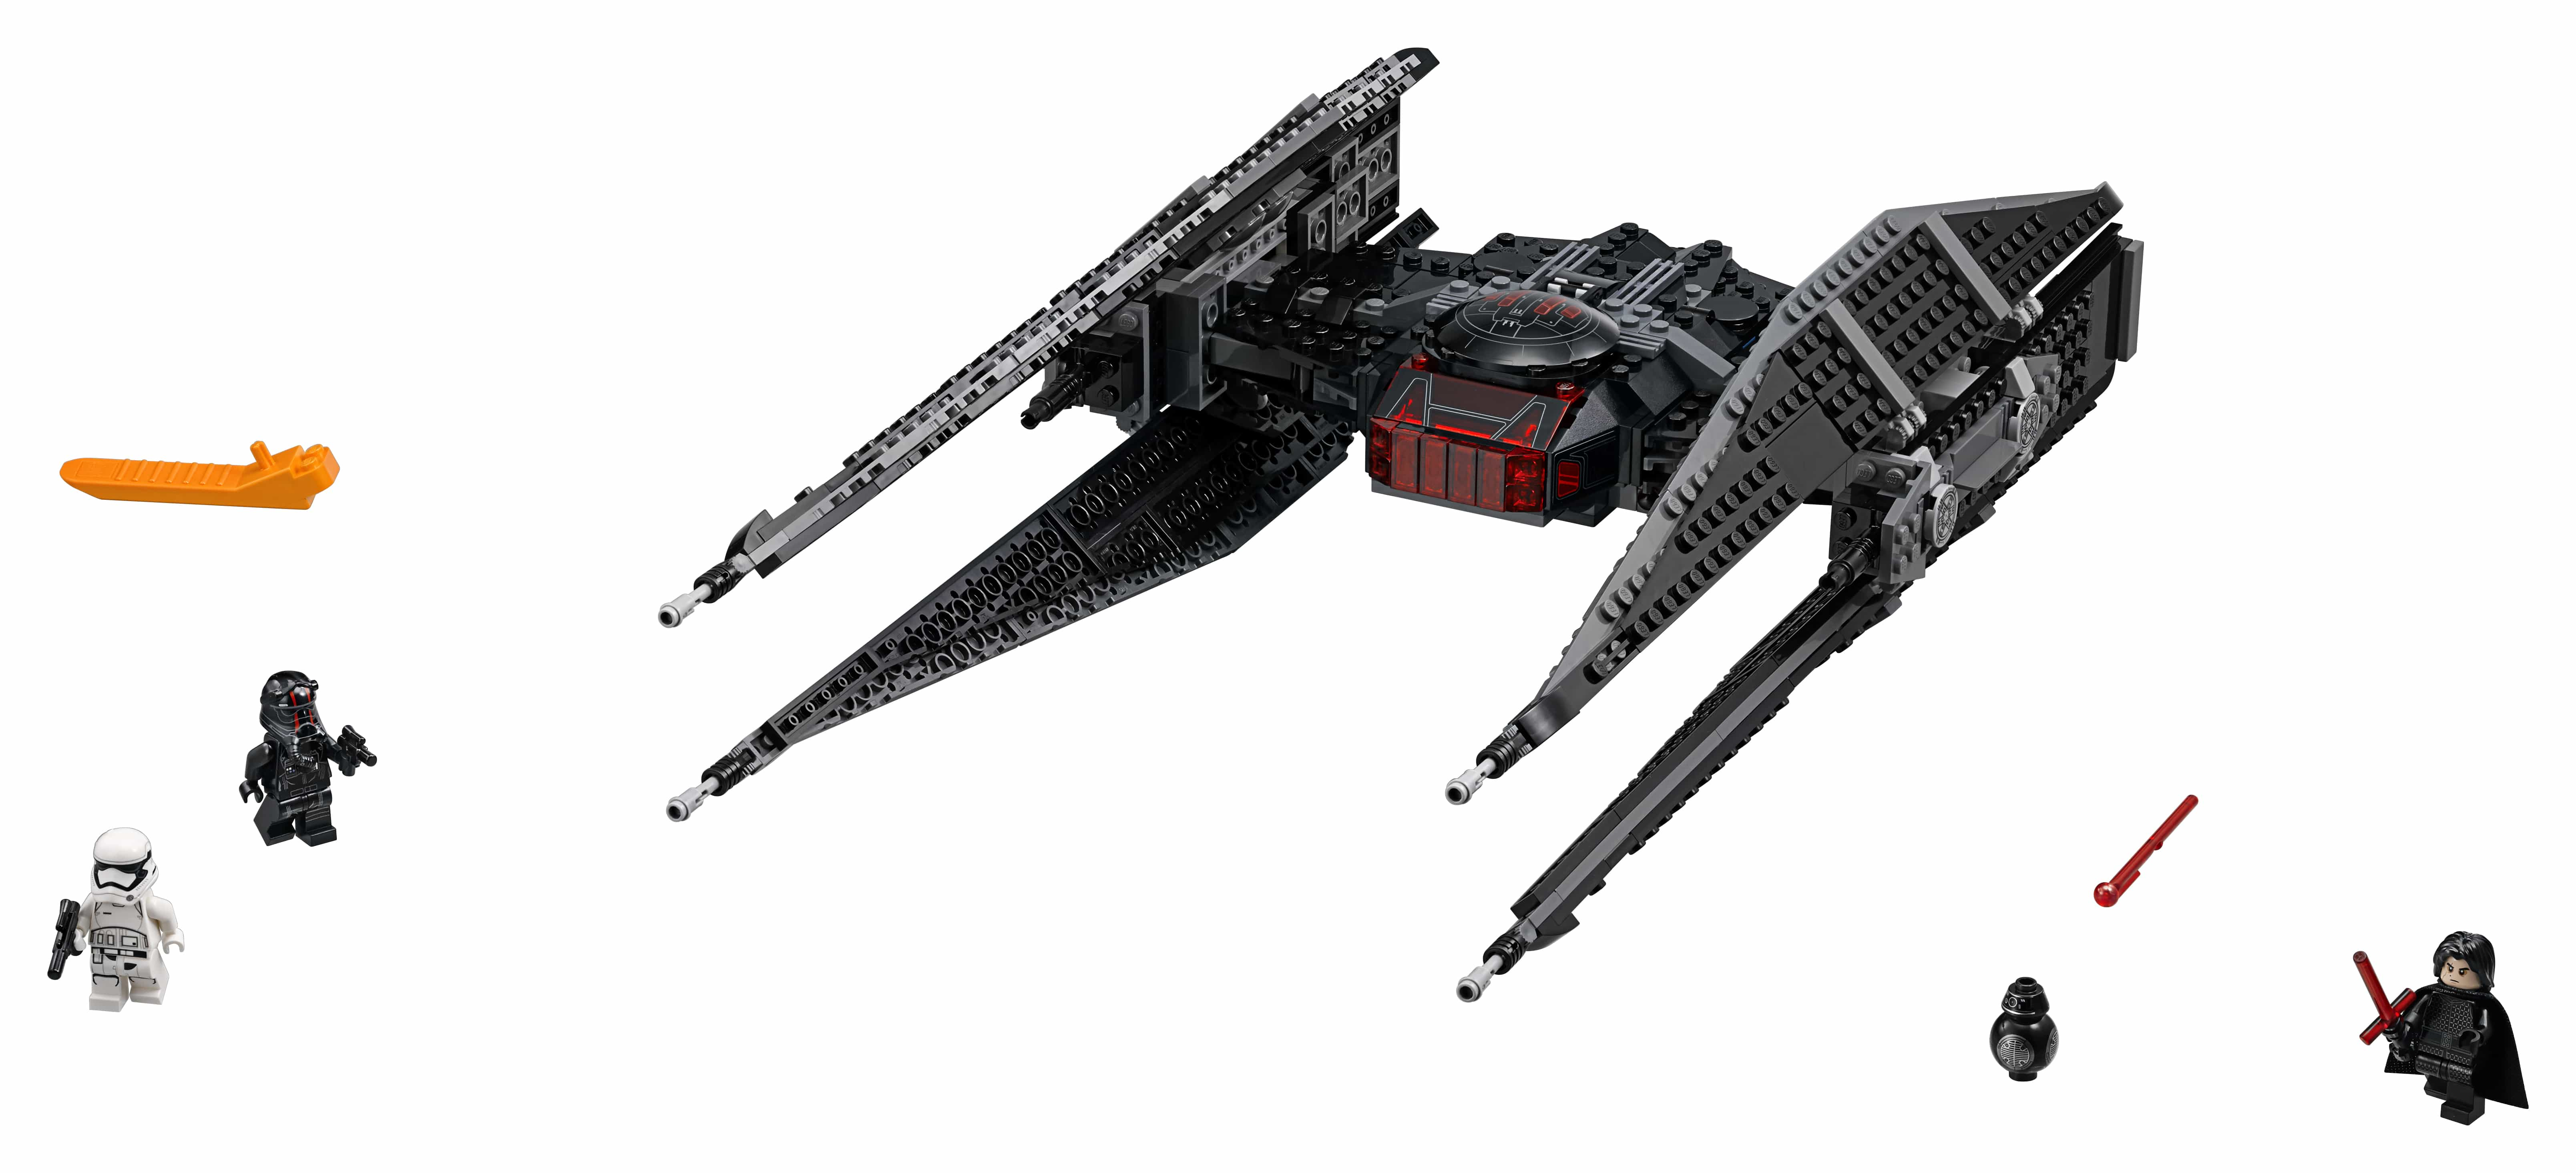 Lego Star Wars The Last Jedi Sets Released